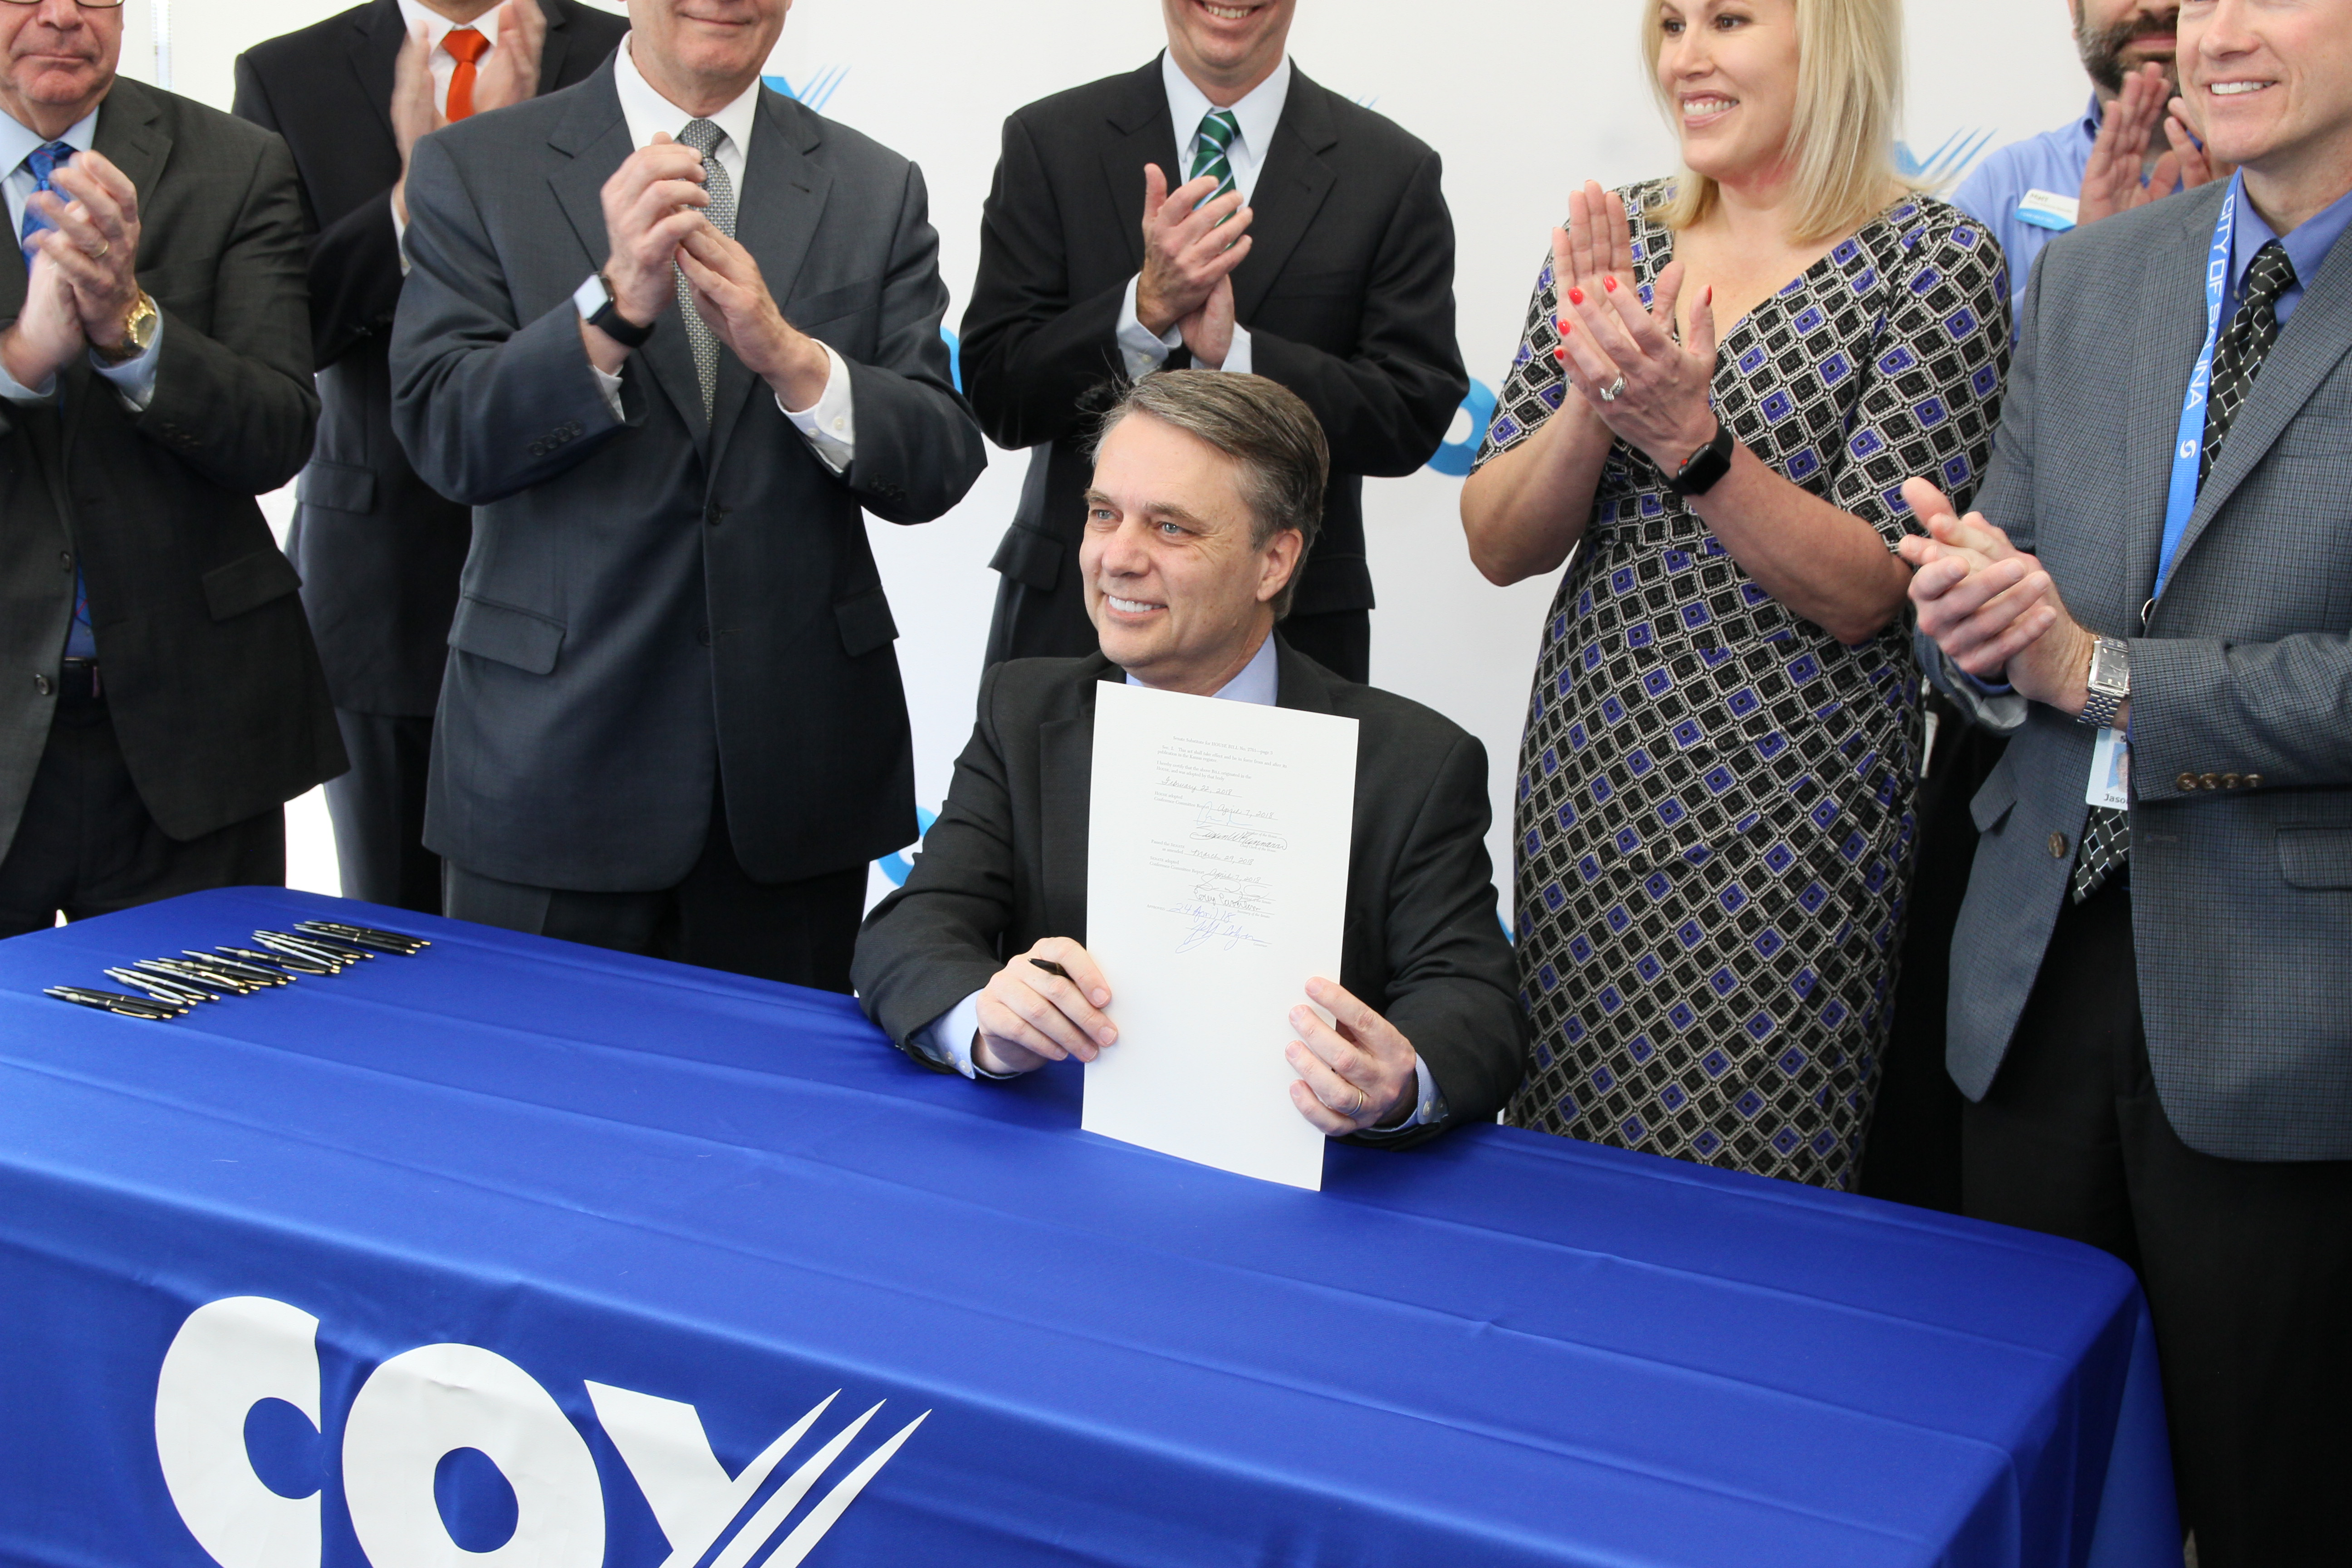 Governor Jeff Colyer Signs Senate Substitute for HB 2701 into Law Creating Broadband Expansion Task Force